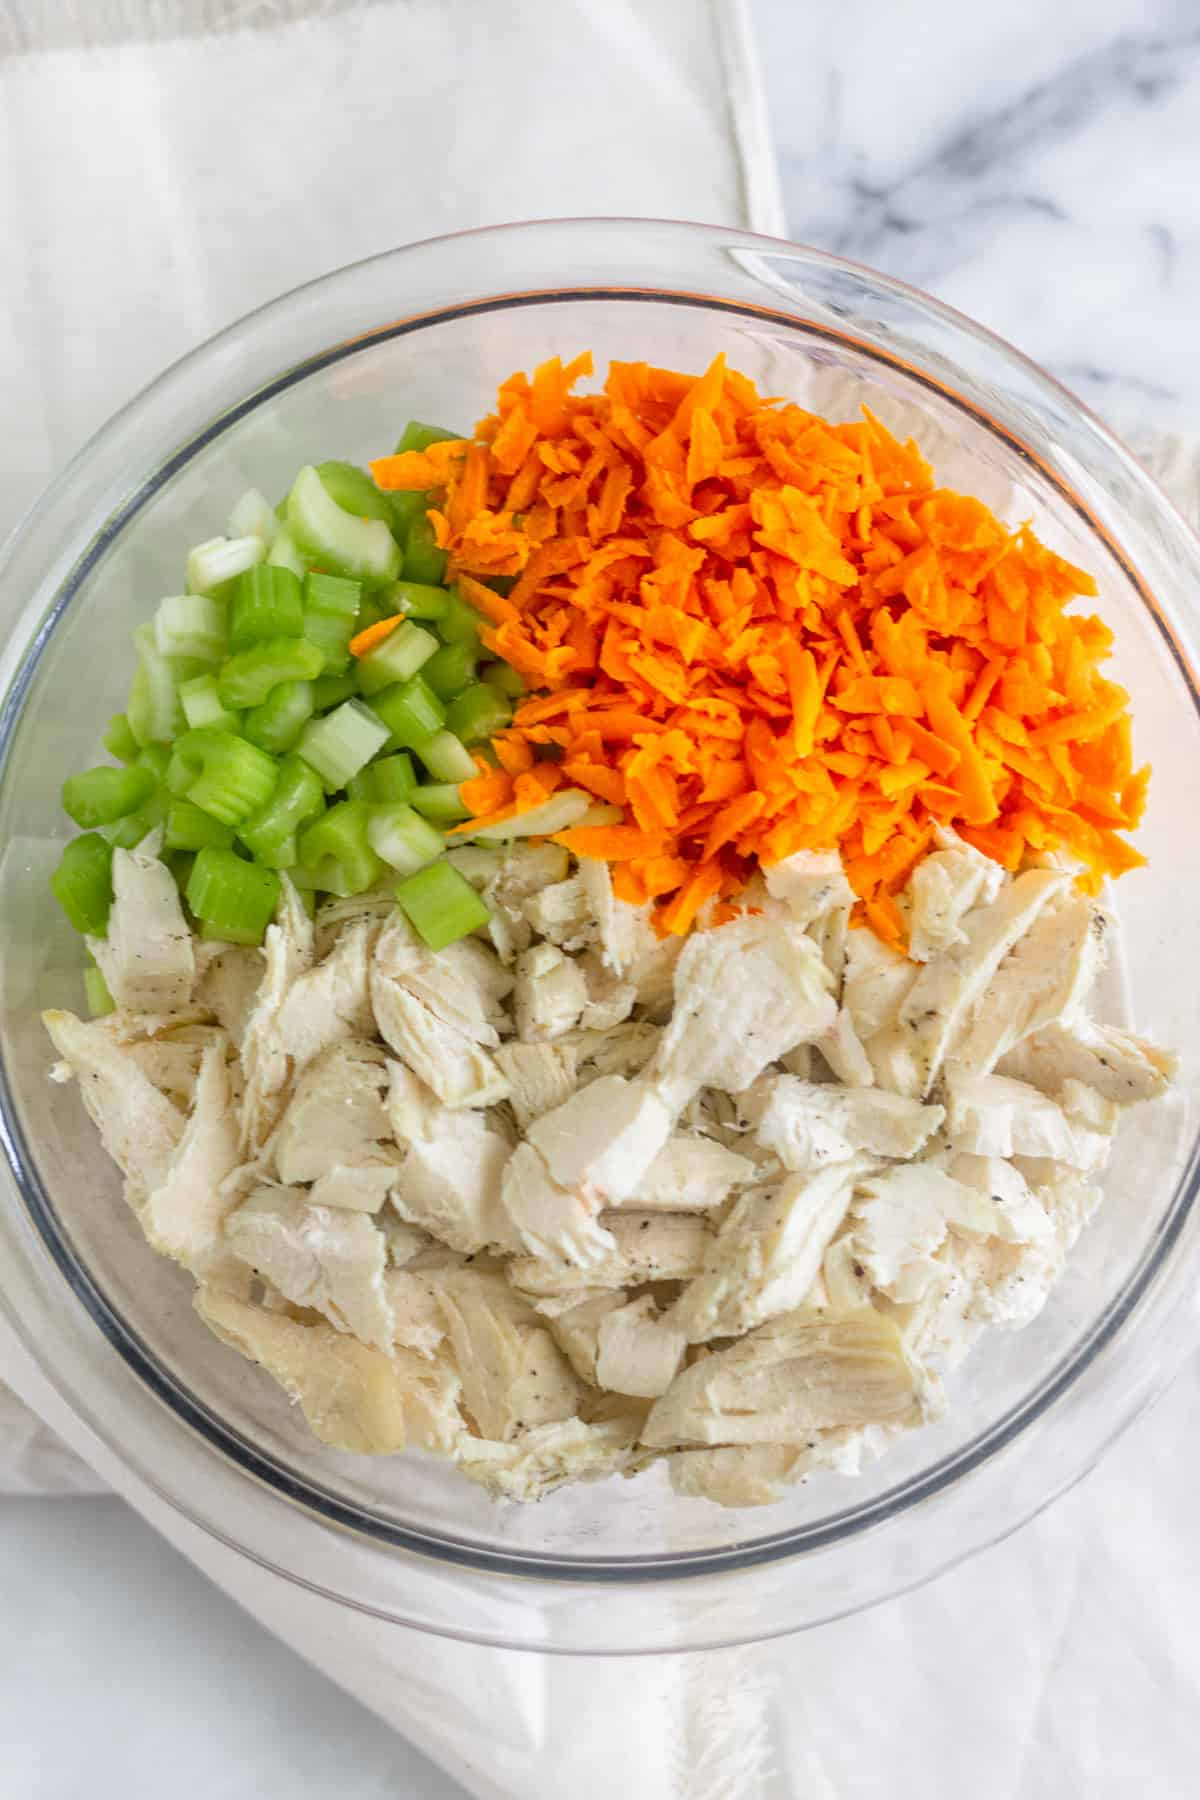 Paleo Buffalo Ranch Chicken Salad Whole30 Eat The Gains